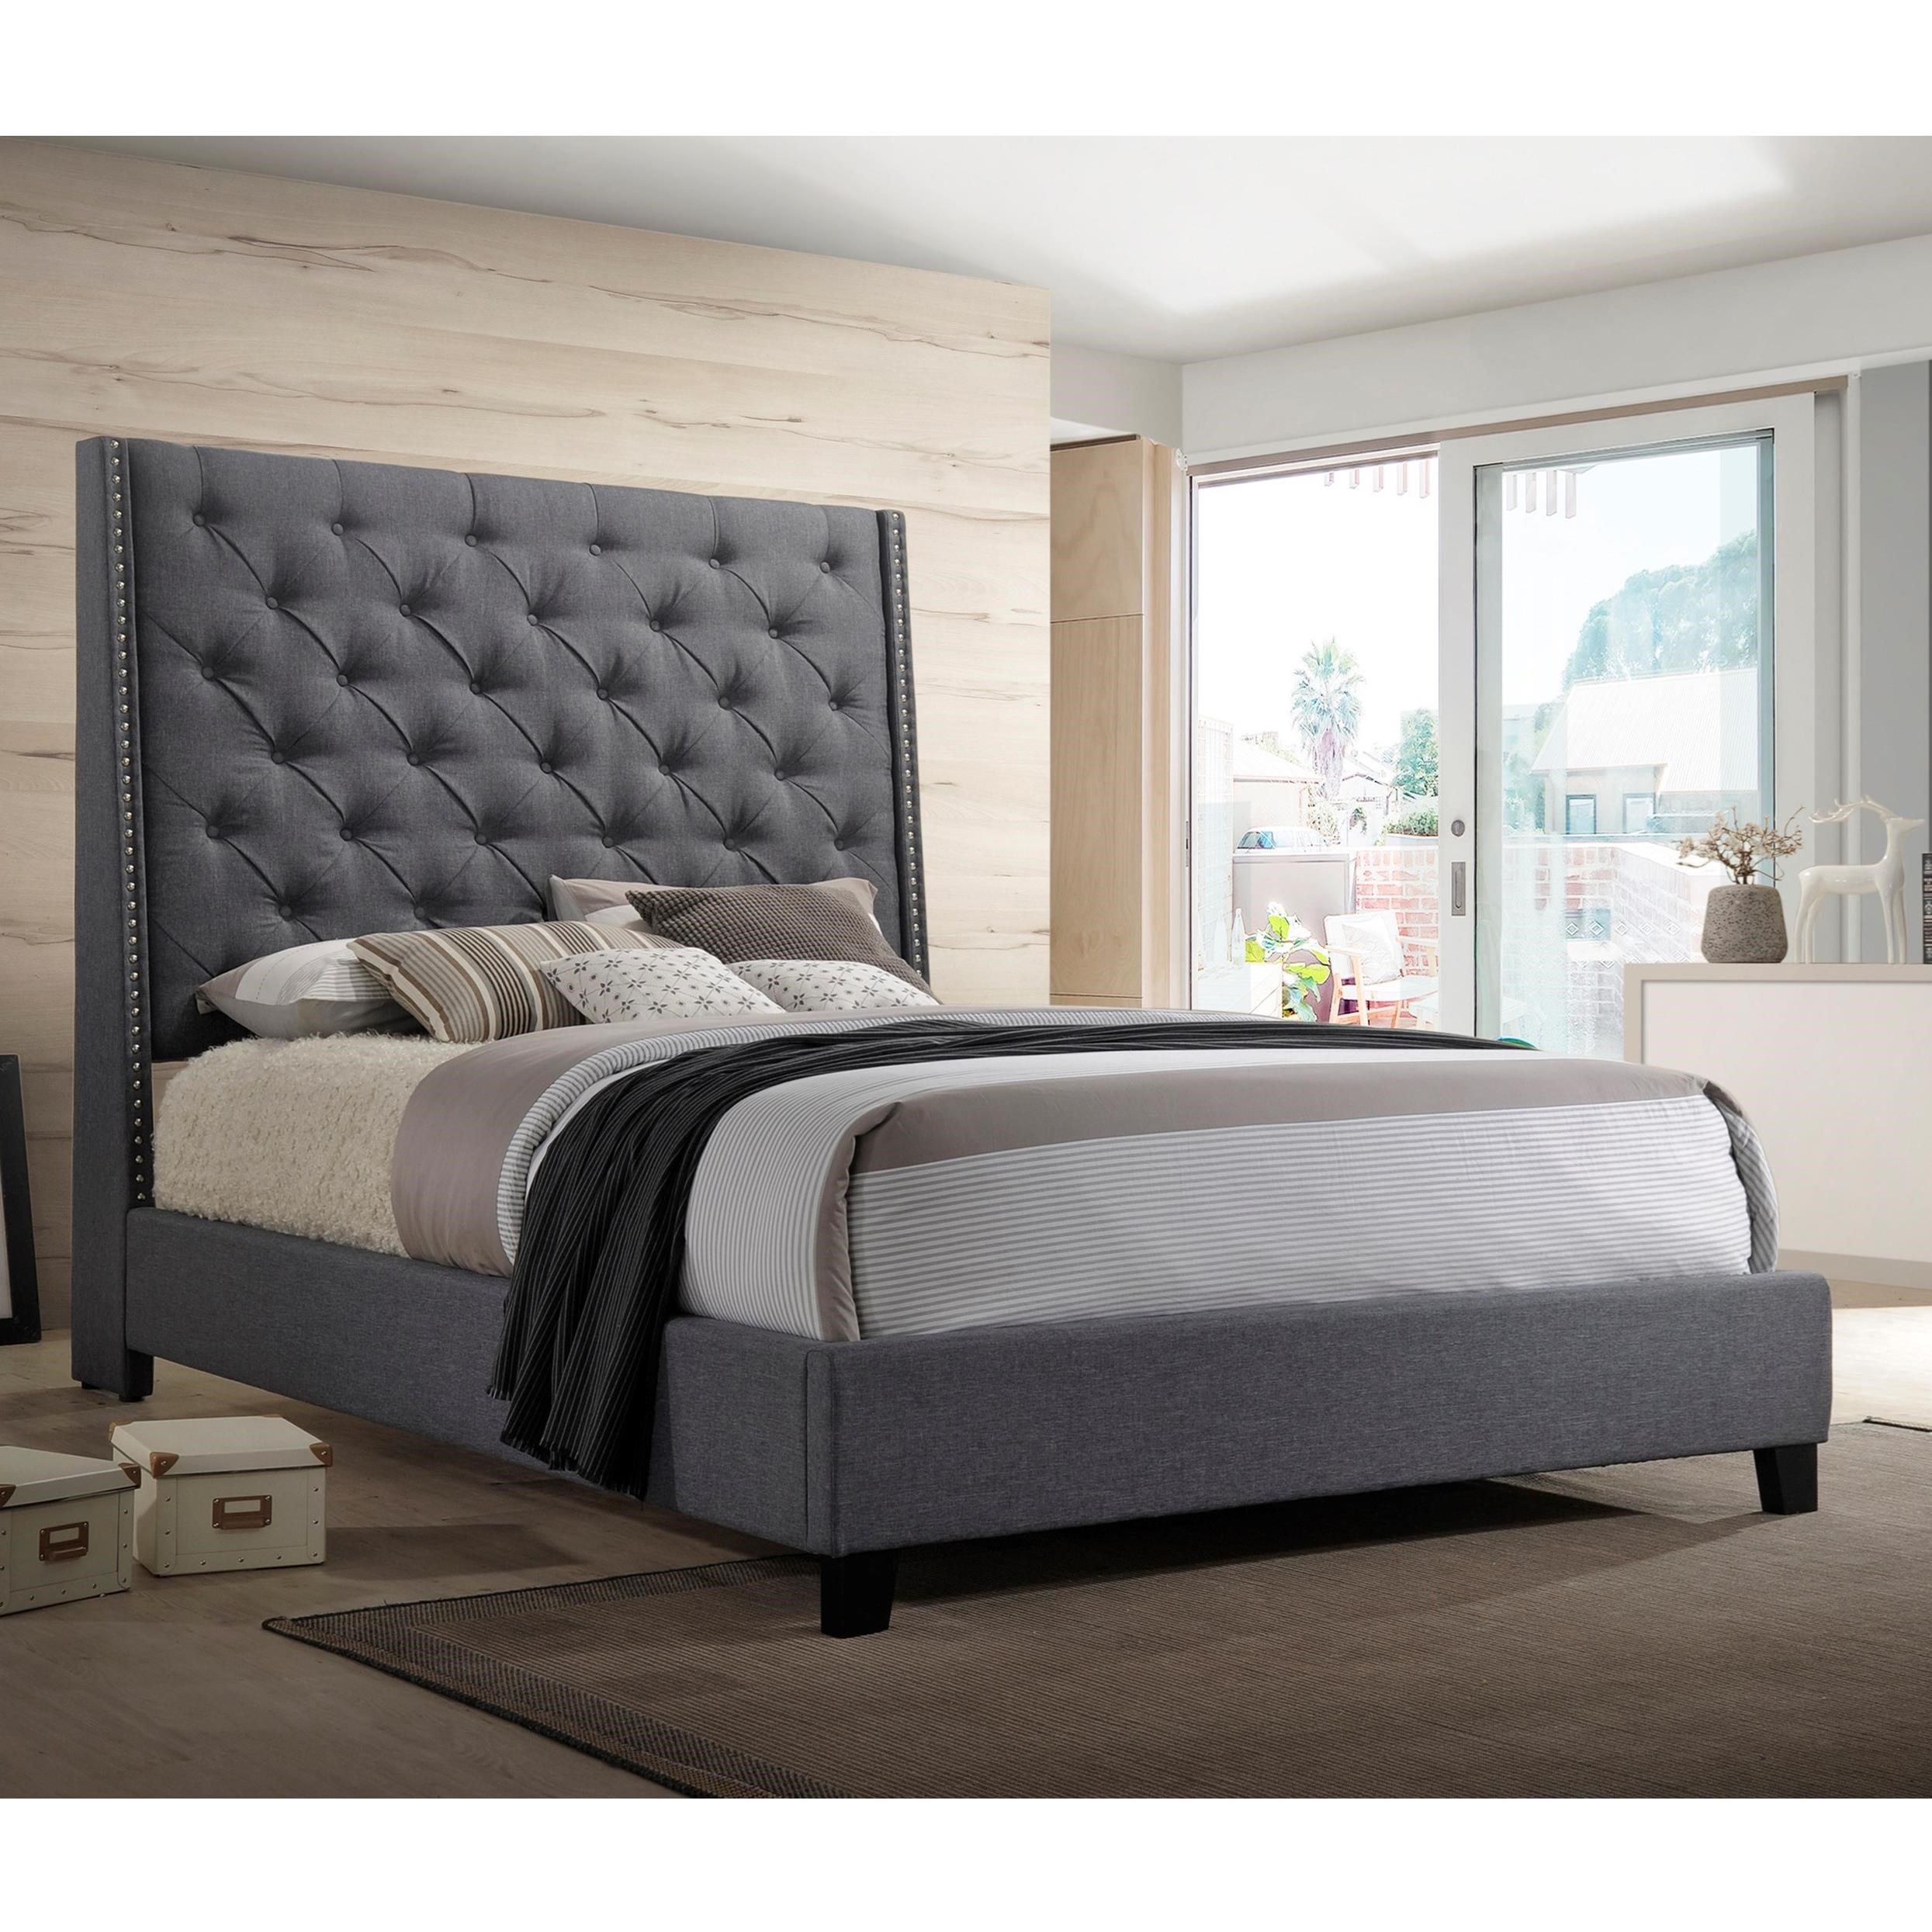 Chantilly Bed King Upholstered Bed by Crown Mark at Darvin Furniture